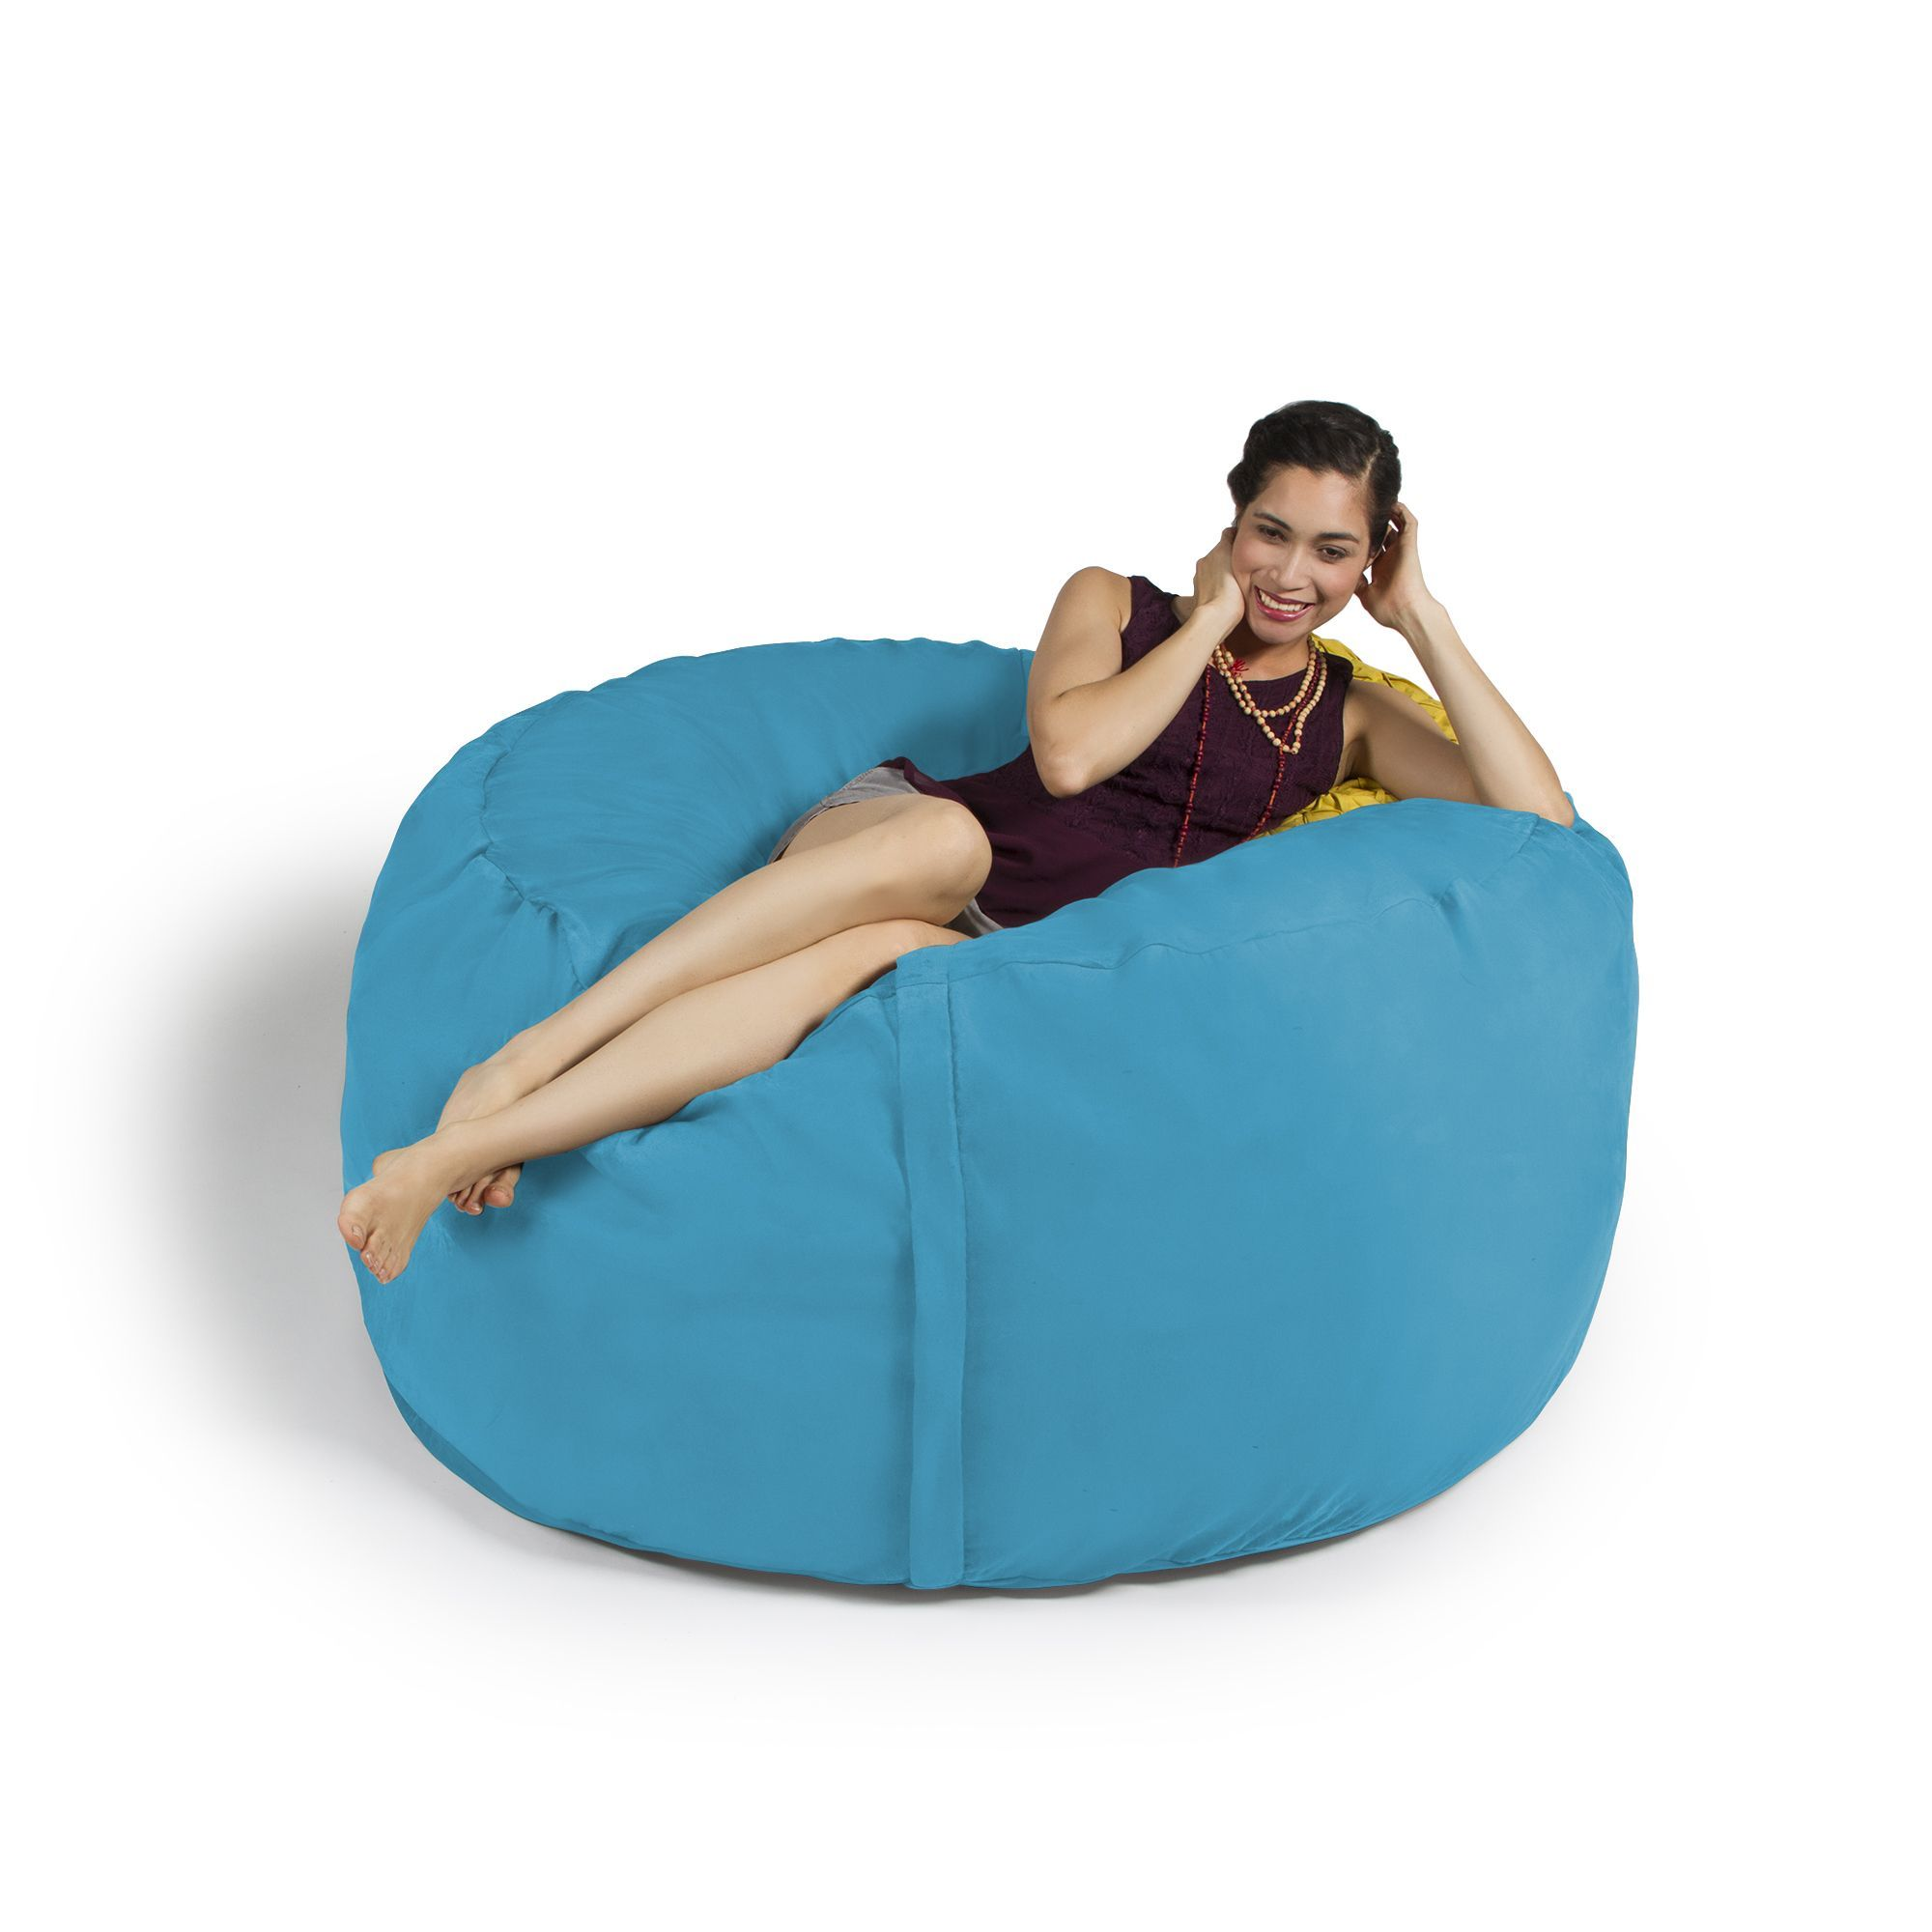 Attirant Giant Bean Bag Chair (